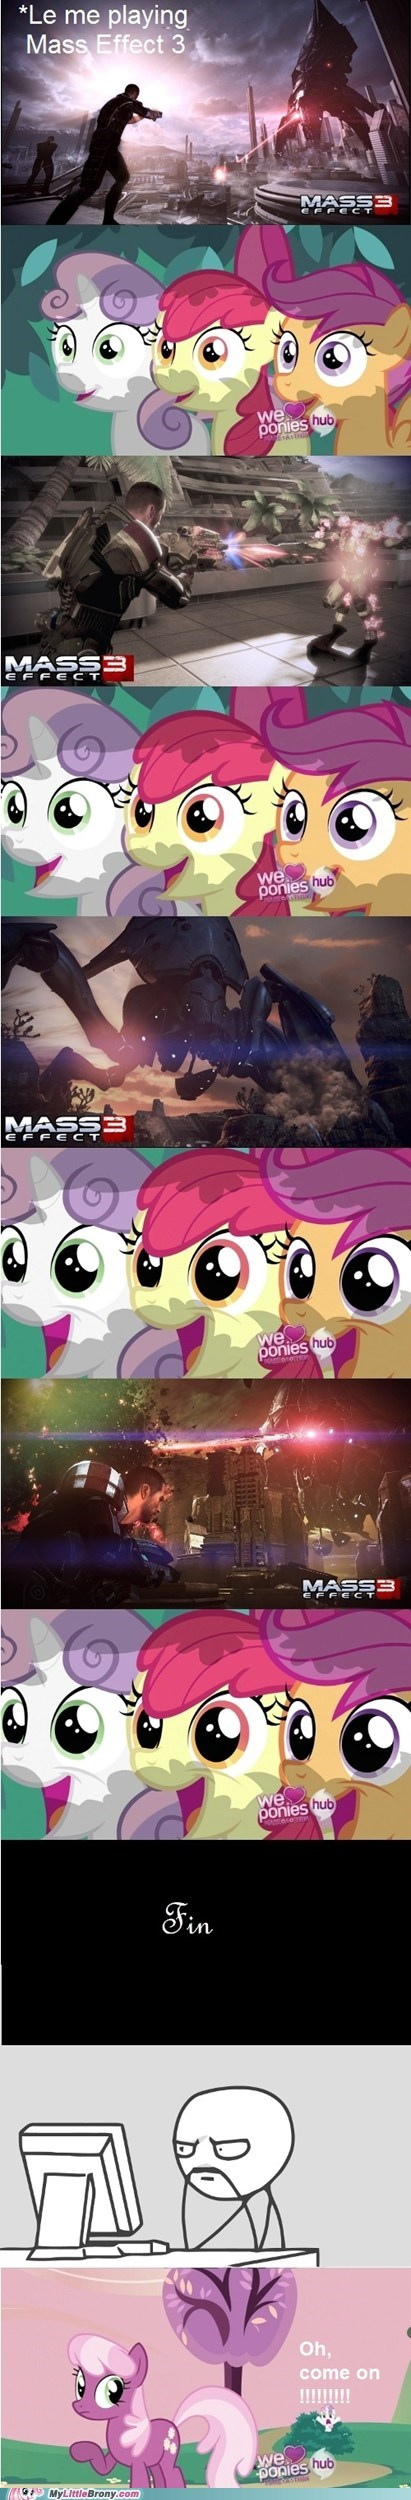 best of week cmc comics cutie mark crusaders mass effect 3 reaction - 5994140928